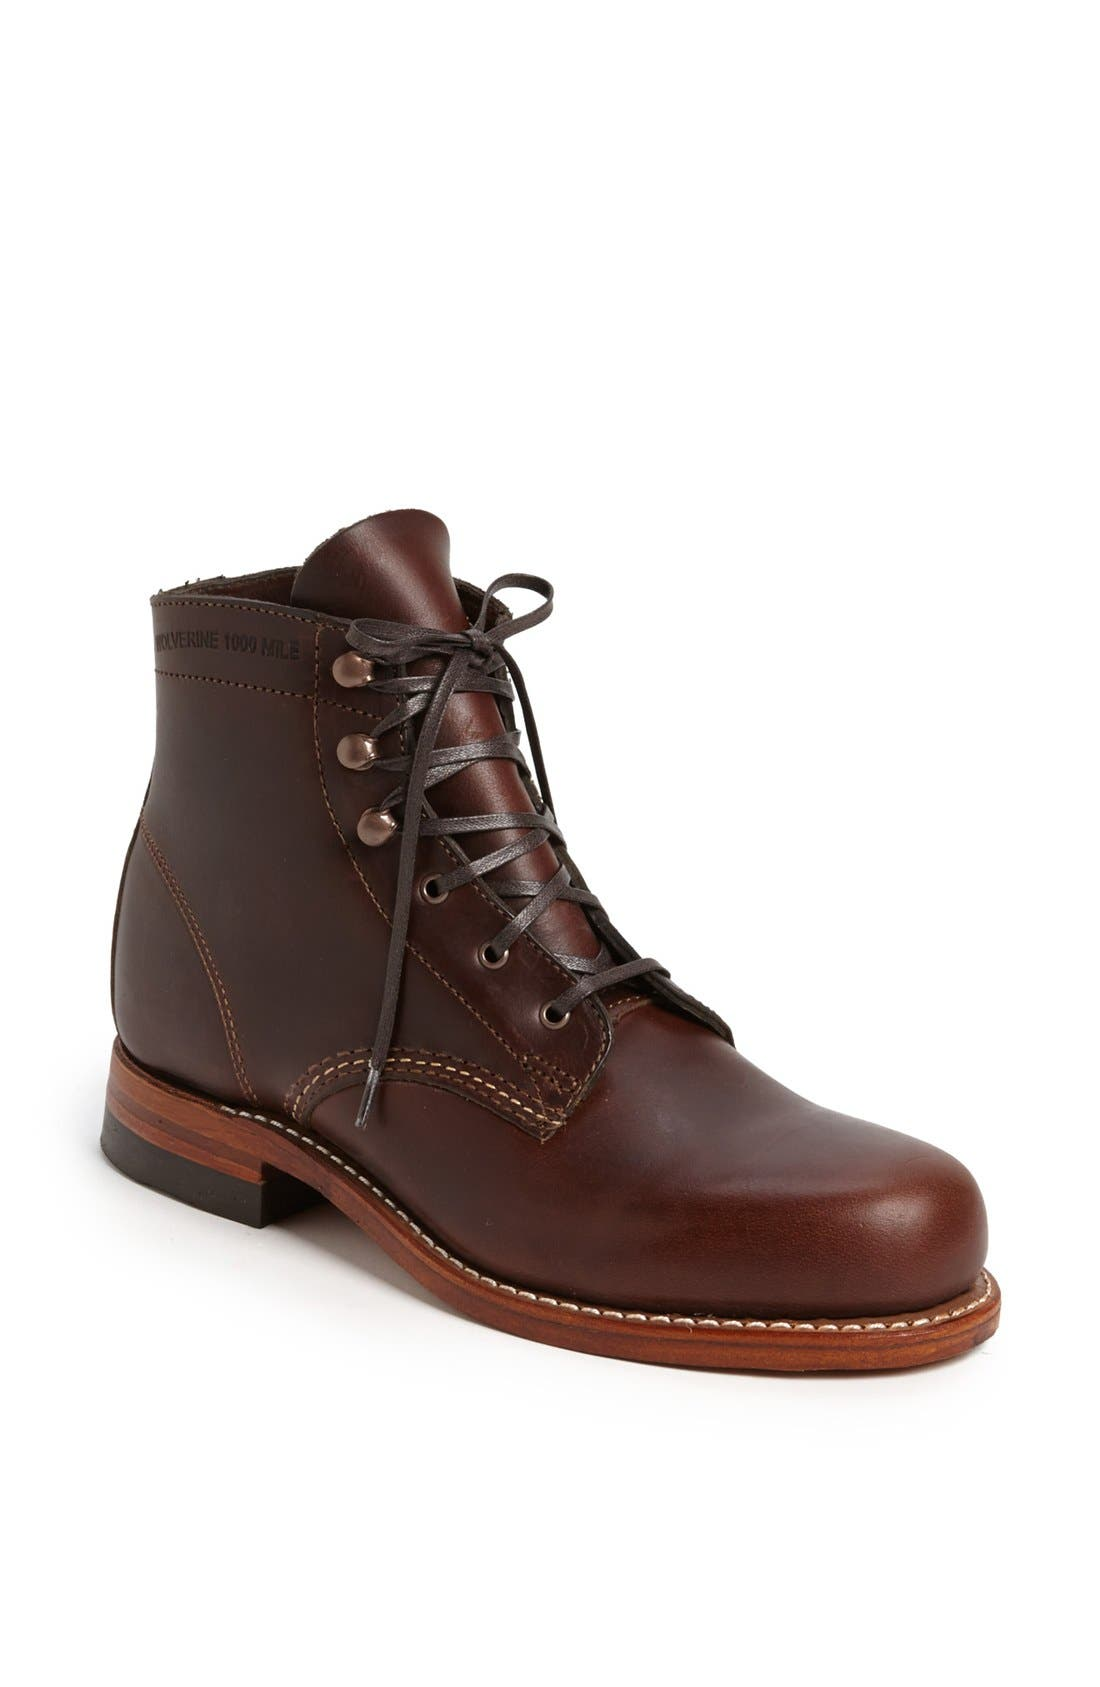 Main Image - Wolverine '1000 Mile' Leather Boot (Women)